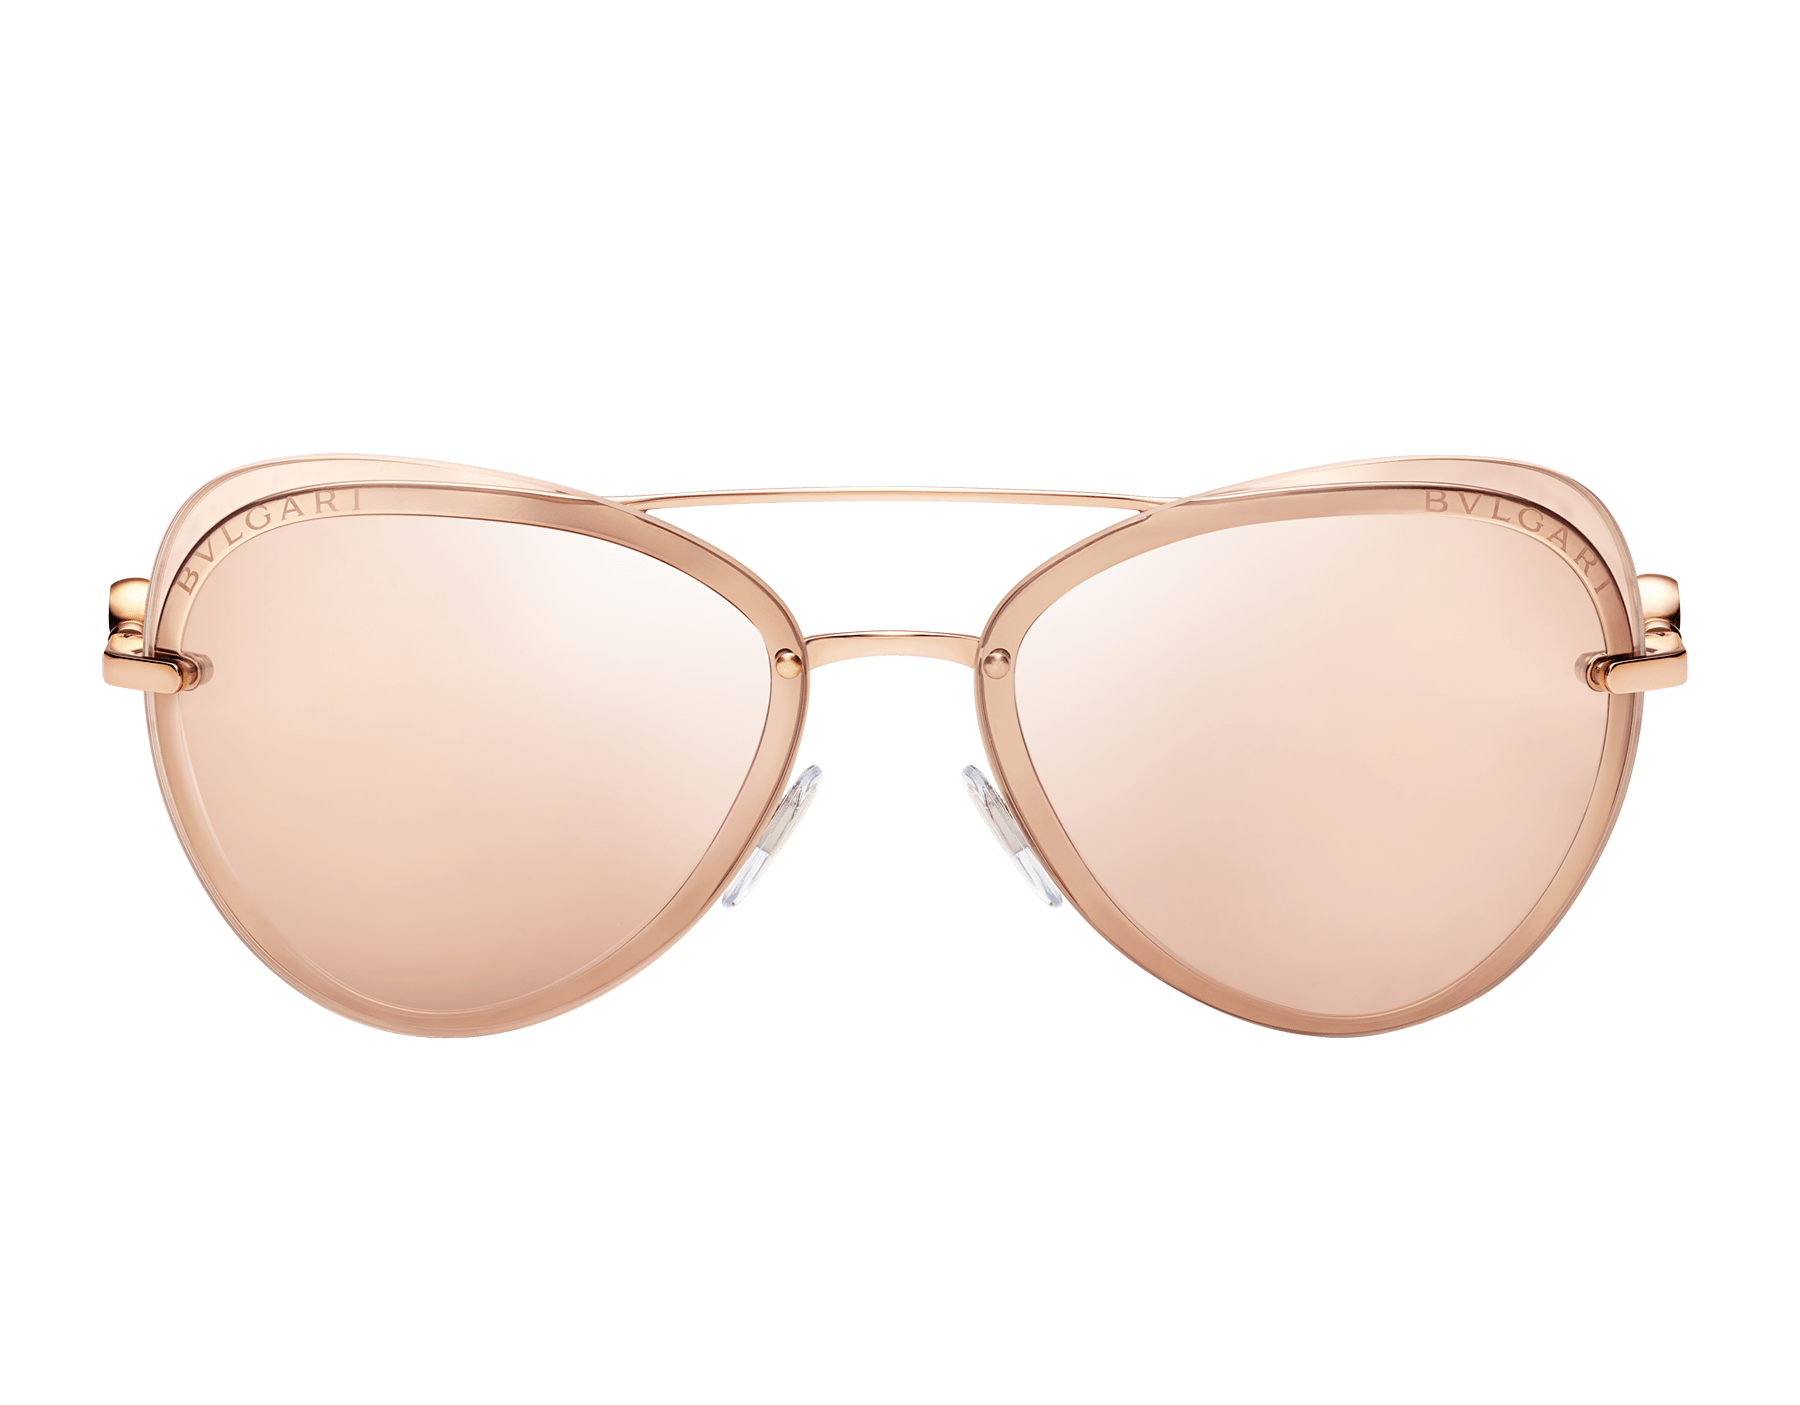 "Bvlgari Bvlgari ""On Me"" metal aviator sunglasses 904080 image 2"